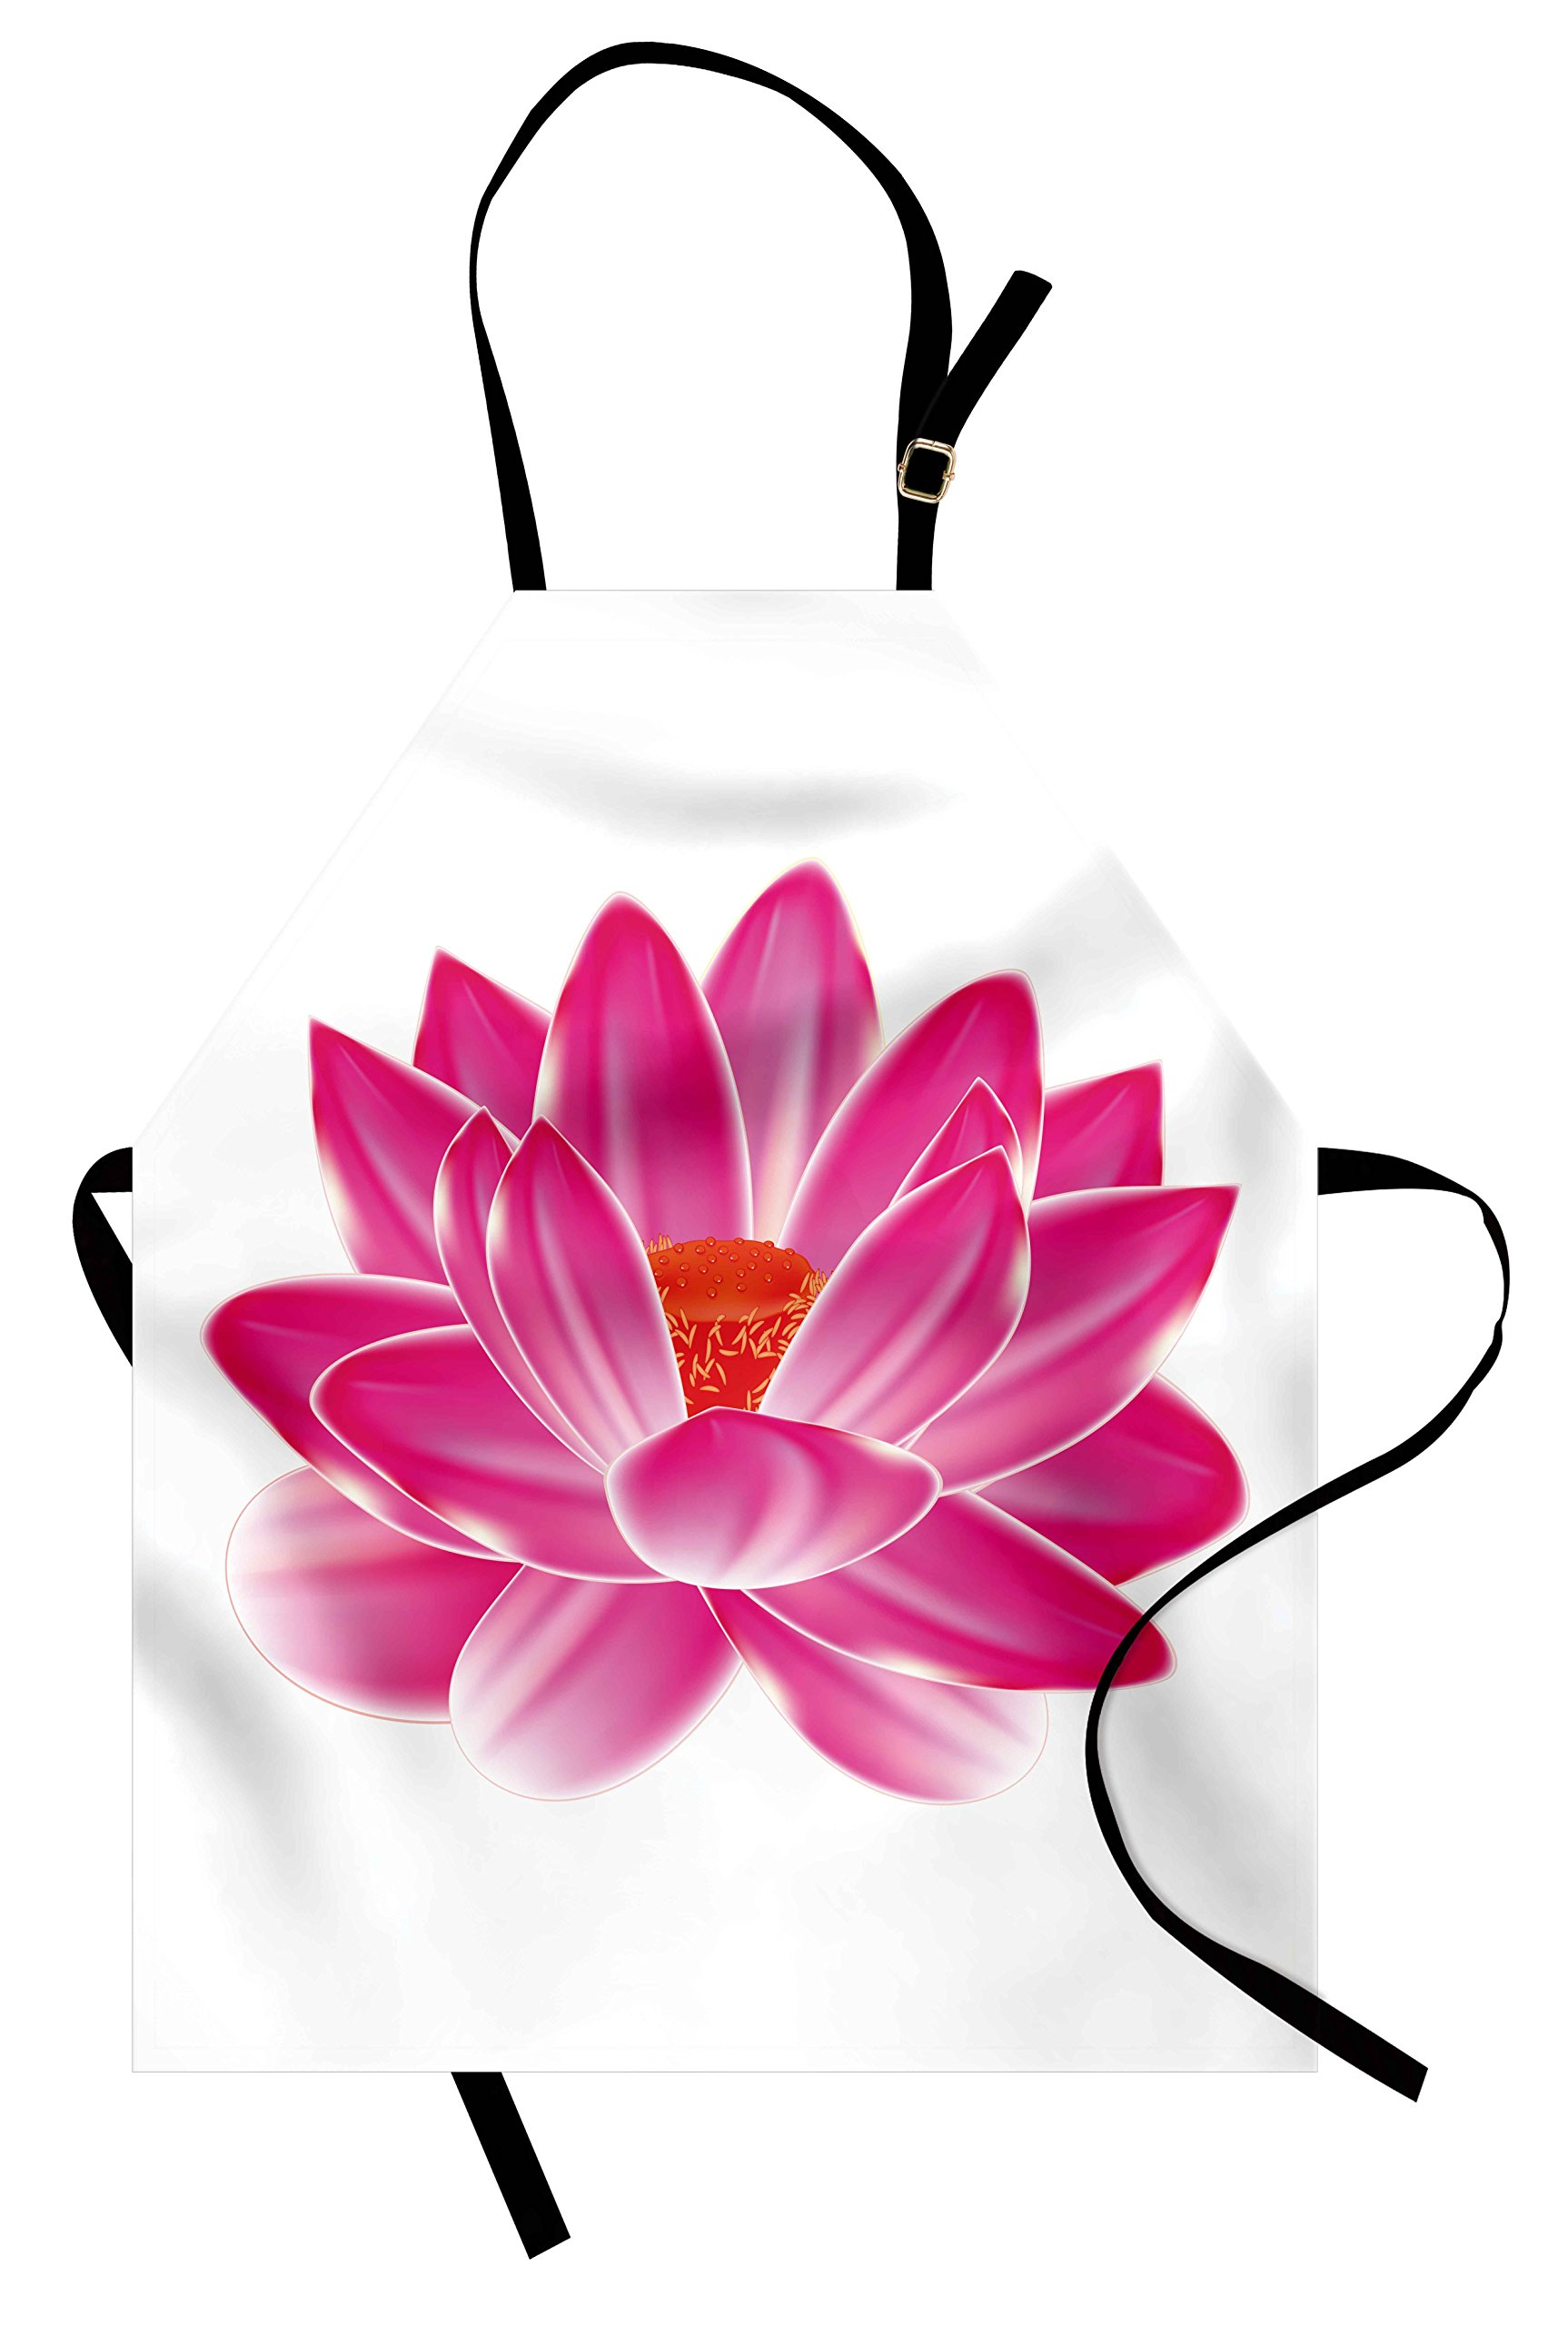 Lunarable Lotus Apron, Vibrant Lotus Flower Pattern Spa Zen Yoga Asian Balance Energy Lifestyle Artsy Image, Unisex Kitchen Bib Apron with Adjustable Neck for Cooking Baking Gardening, Magenta Red